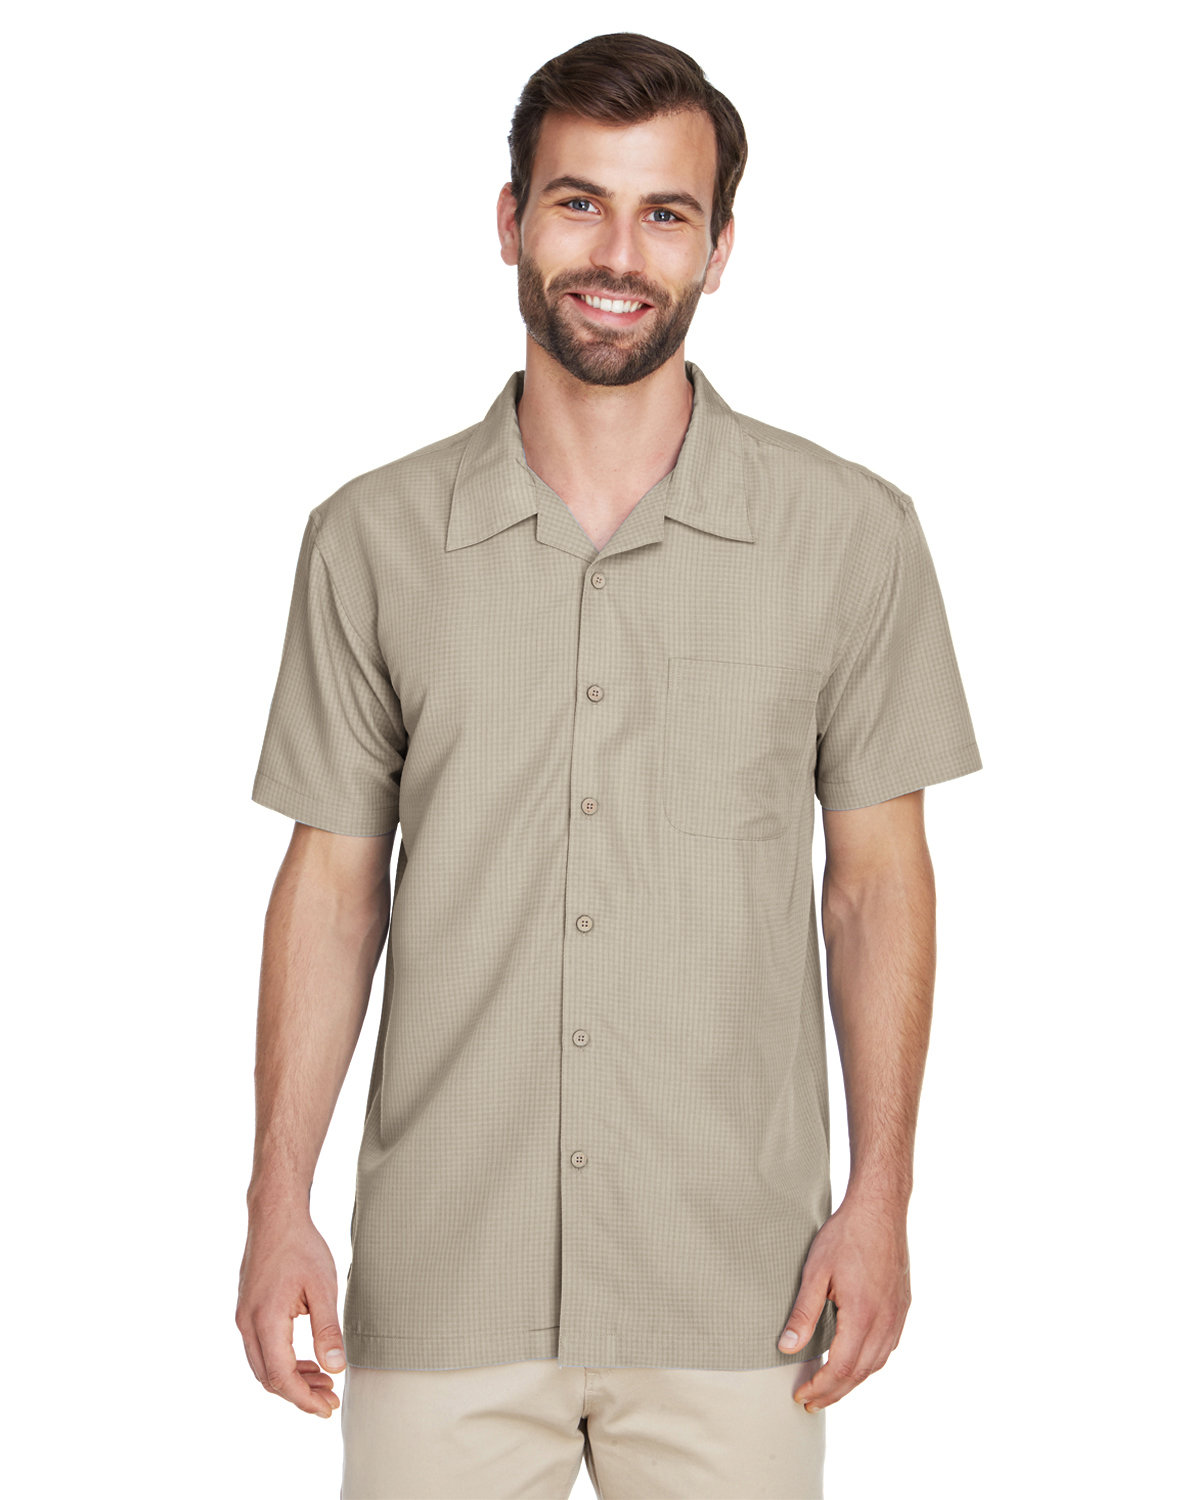 M560 Harriton Mens Barbados Textured Camp Shirt